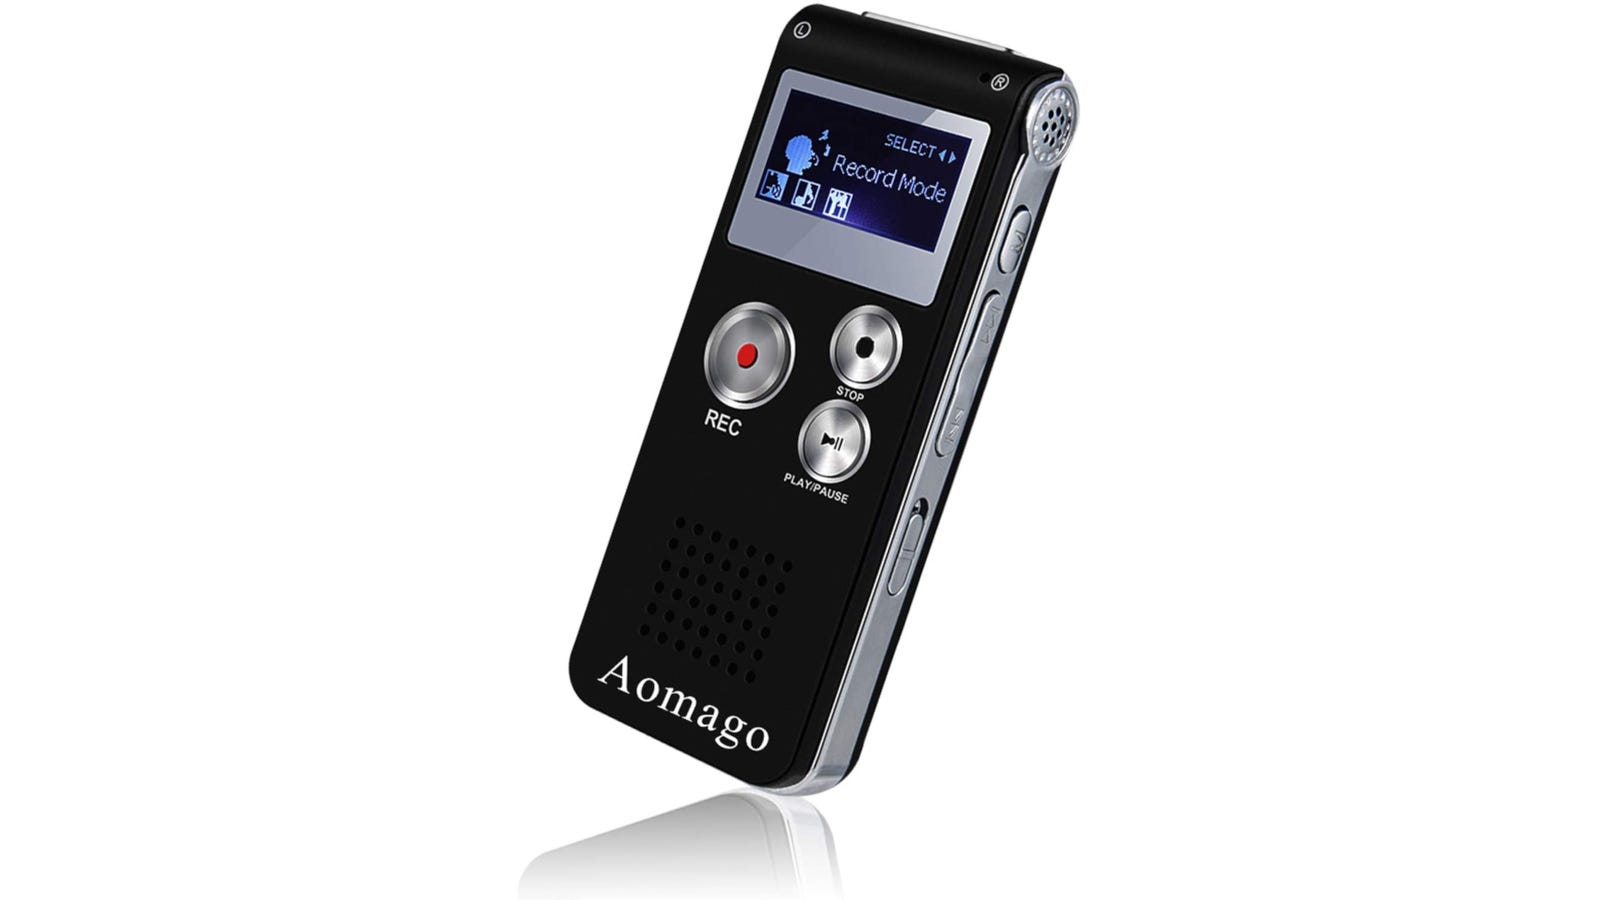 Black 8GB compact digital voice recorder with audio playback and voice activation recording